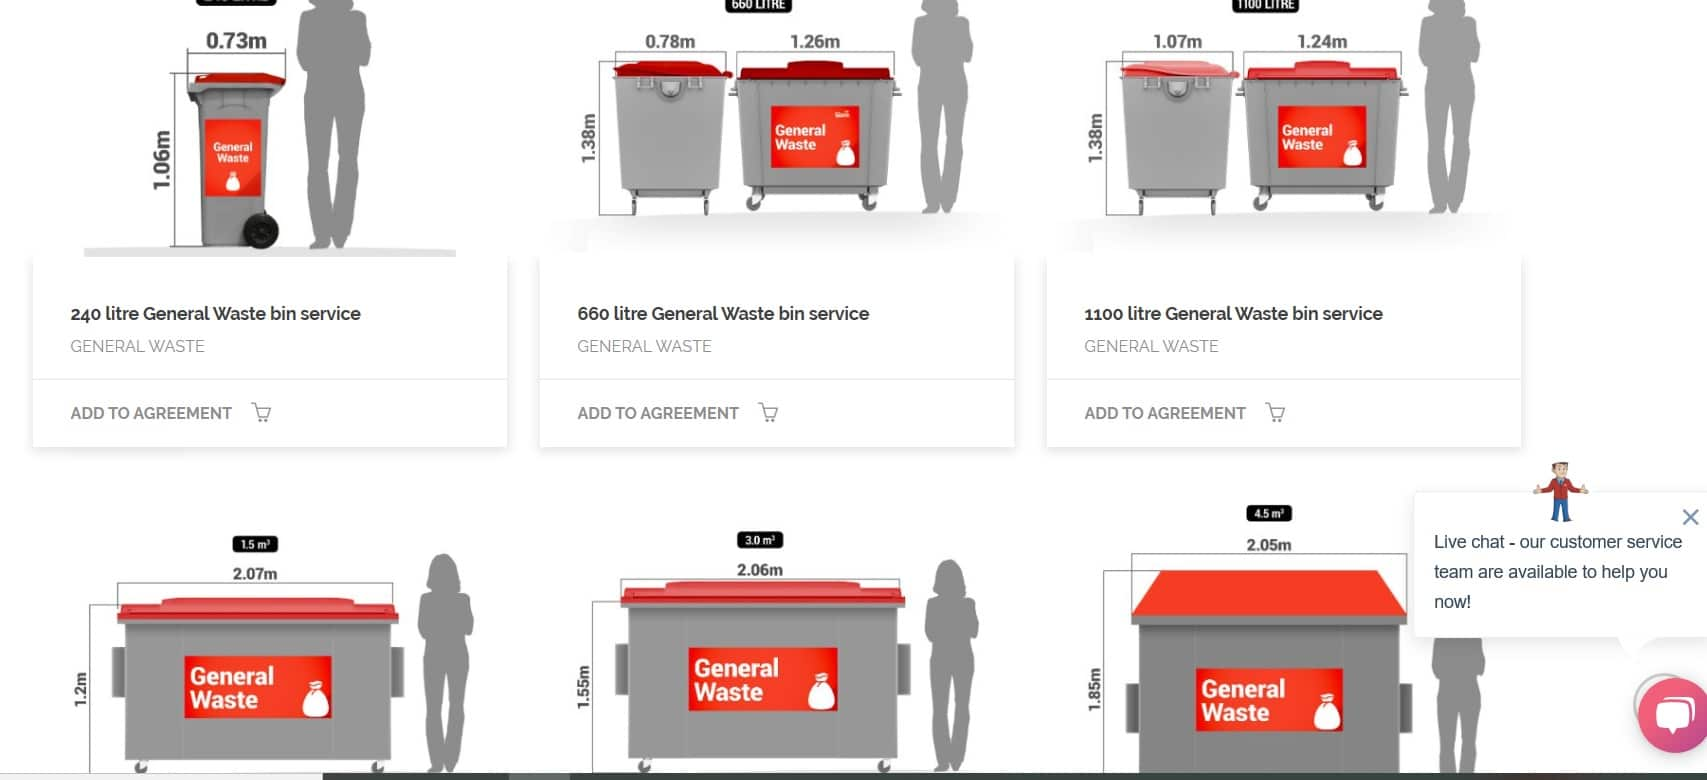 general waste bin sizes